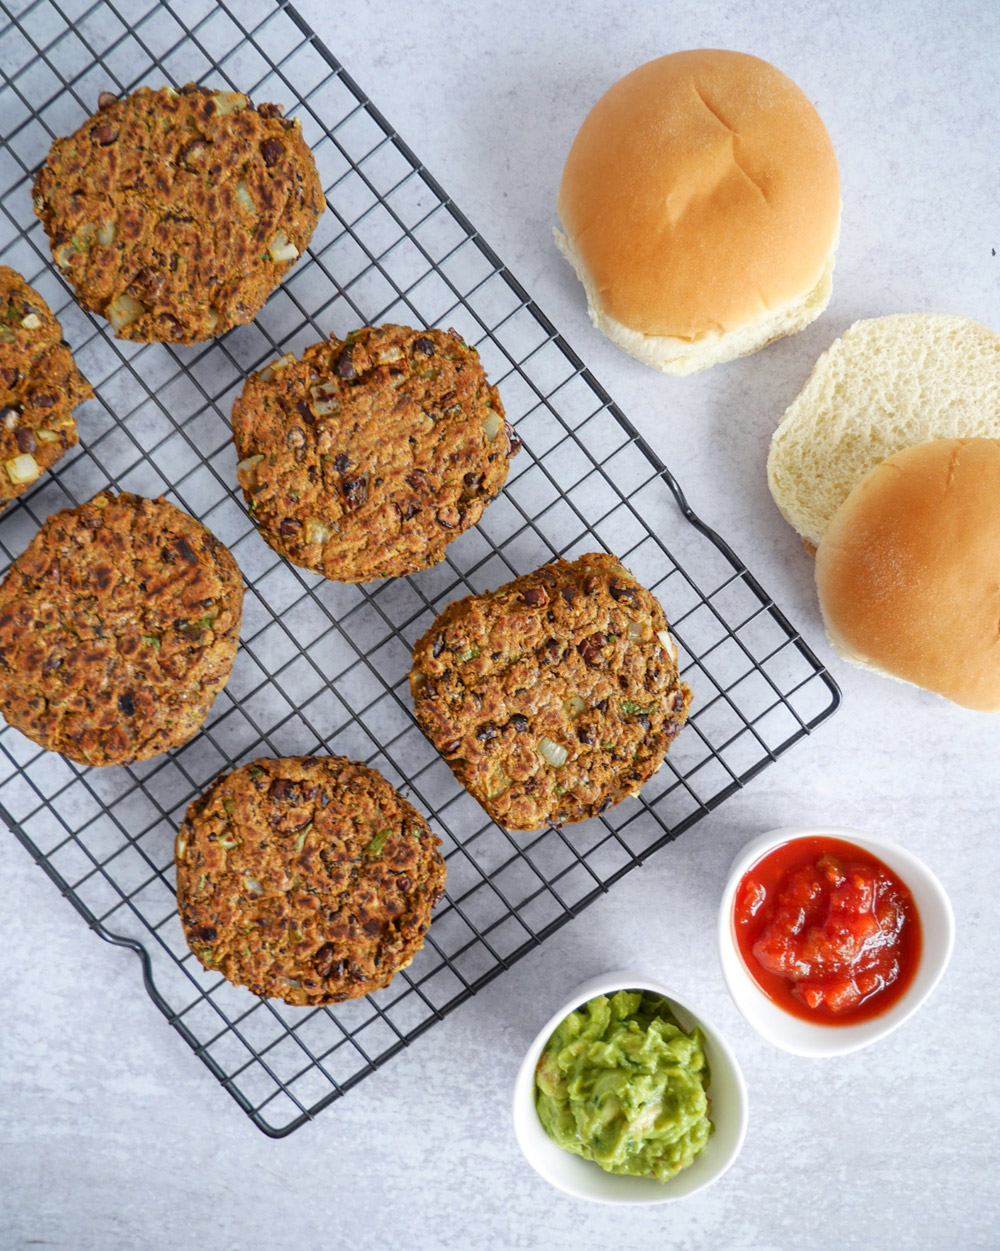 Vegan Black Bean Burgers Recipe